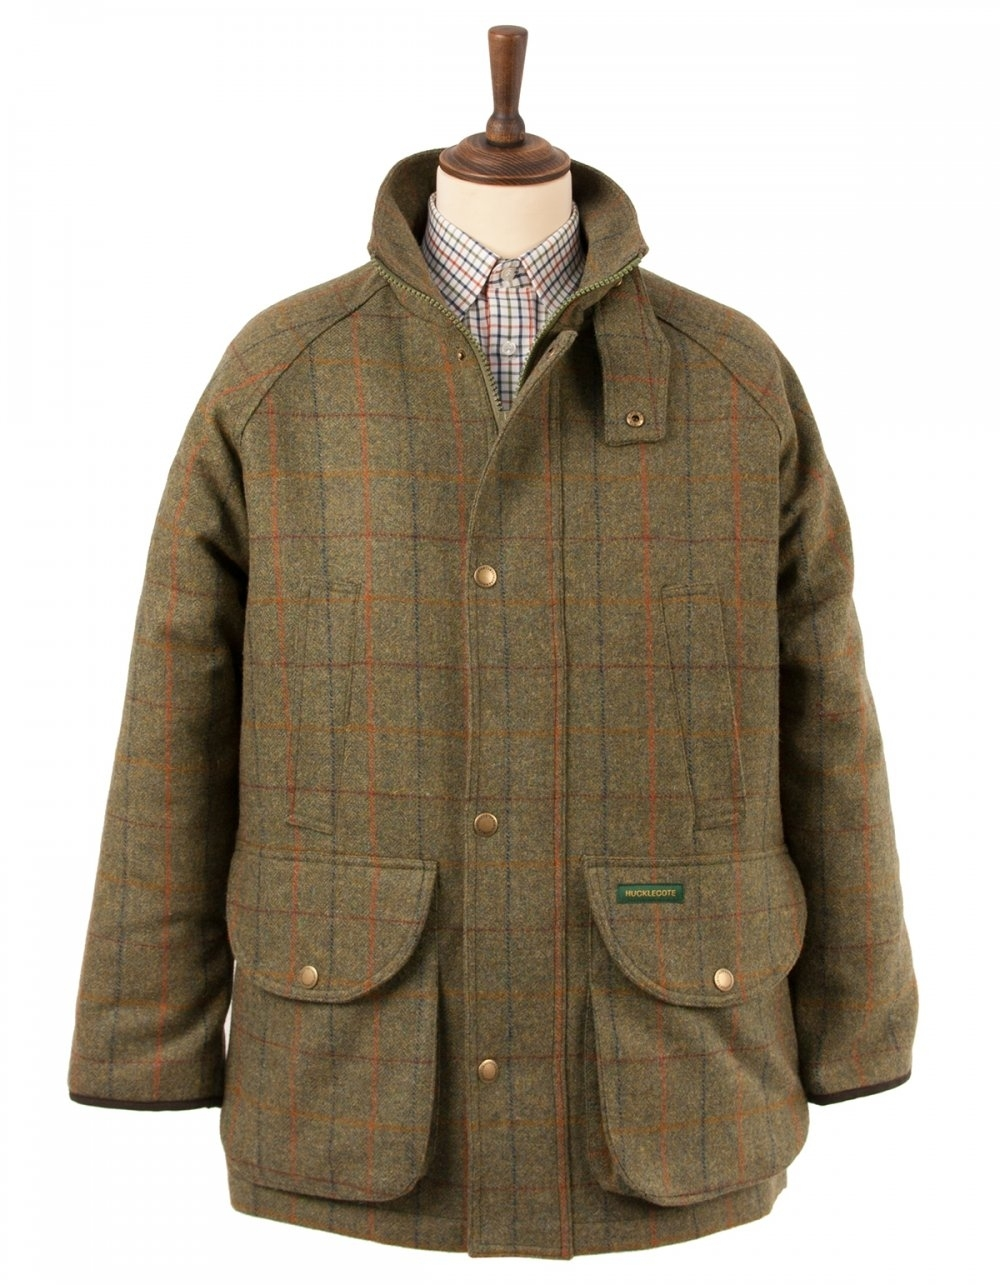 Hucklecote Morpeth Waterproof Tweed Shooting Jacket - Green ...